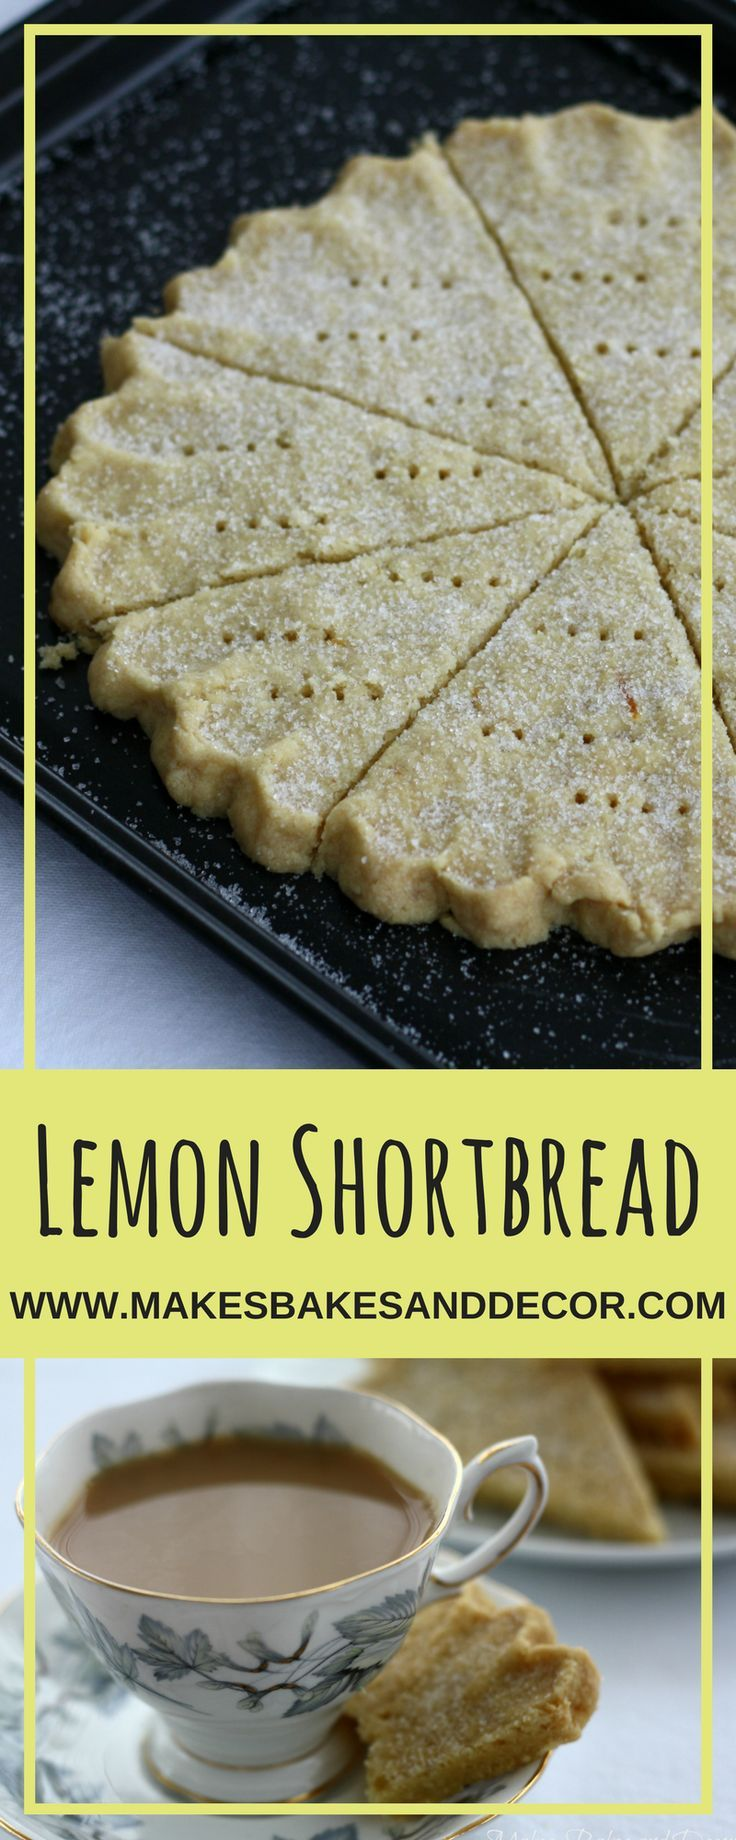 A recipe for lemon shortbread from Makes, Bakes and decor. Buttery, crumbly and delicious this shortbread recipe is easy to make but soooo good!